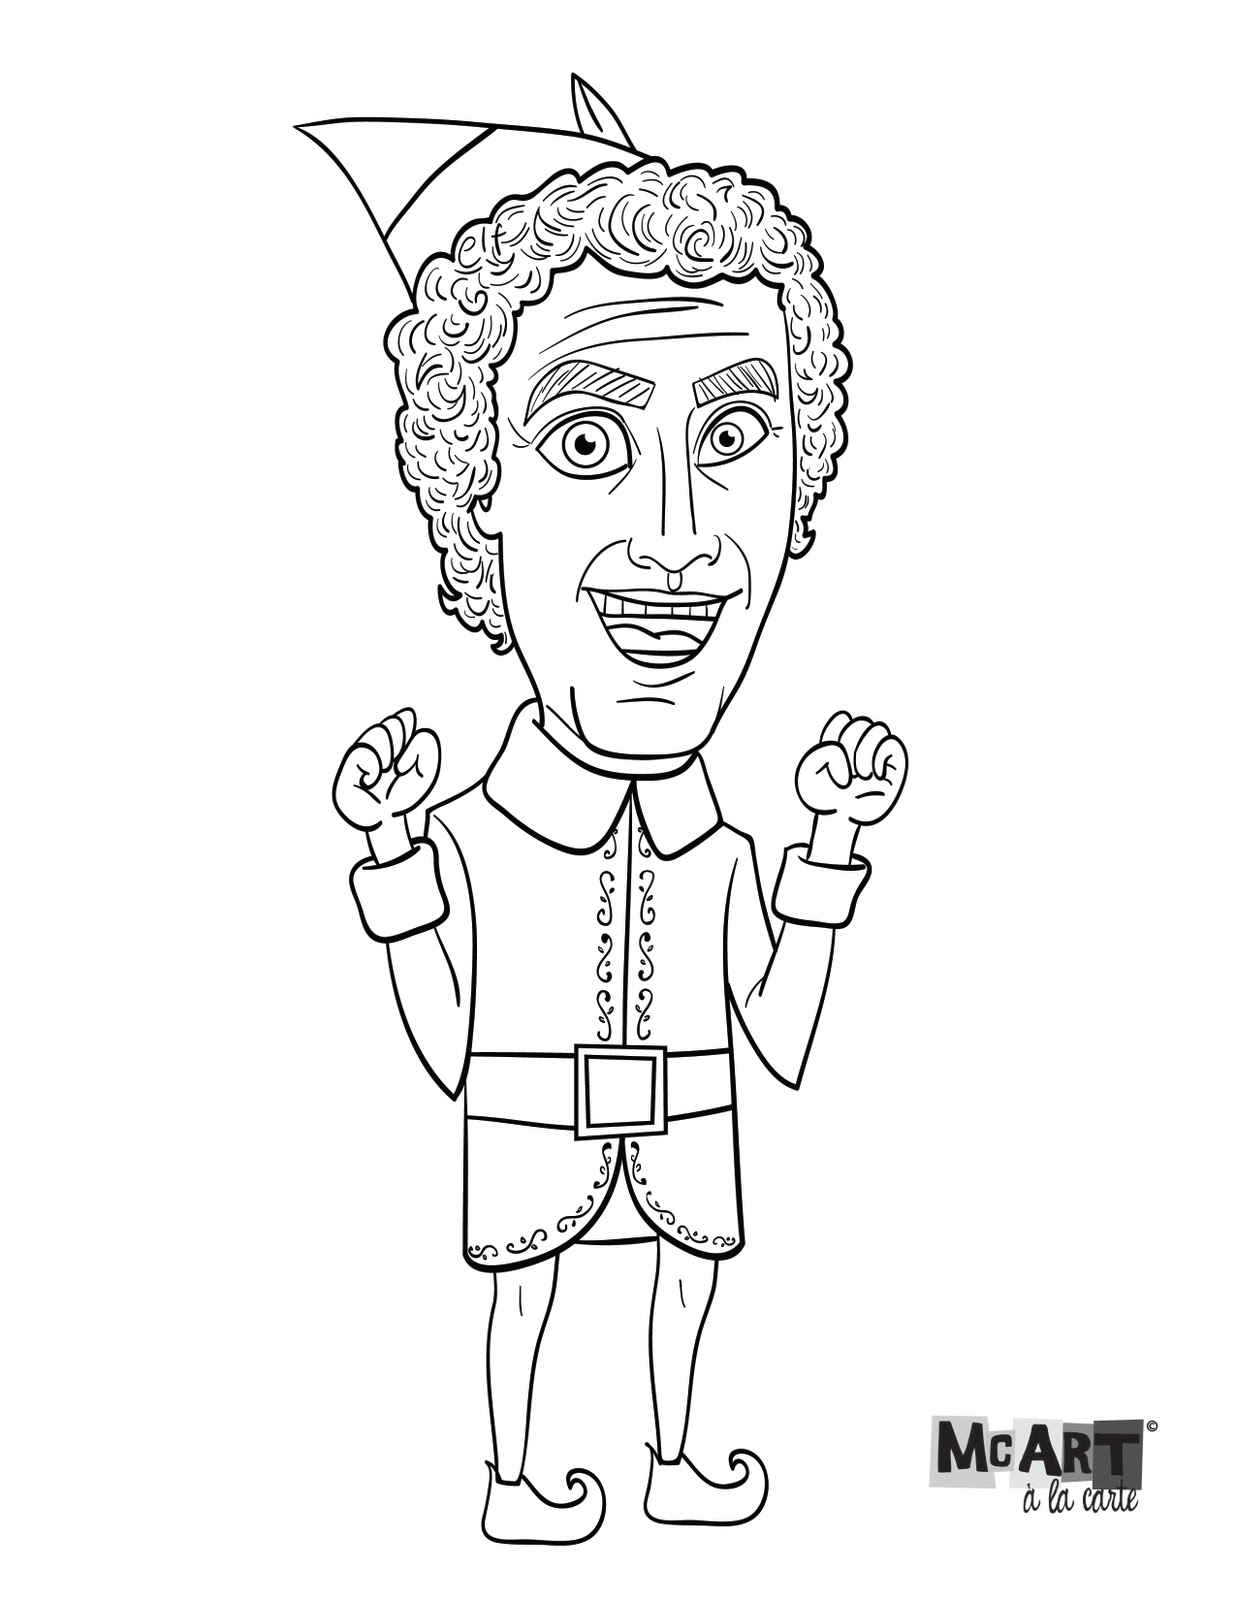 McArt à la Carte: Buddy the Elf coloring page!.